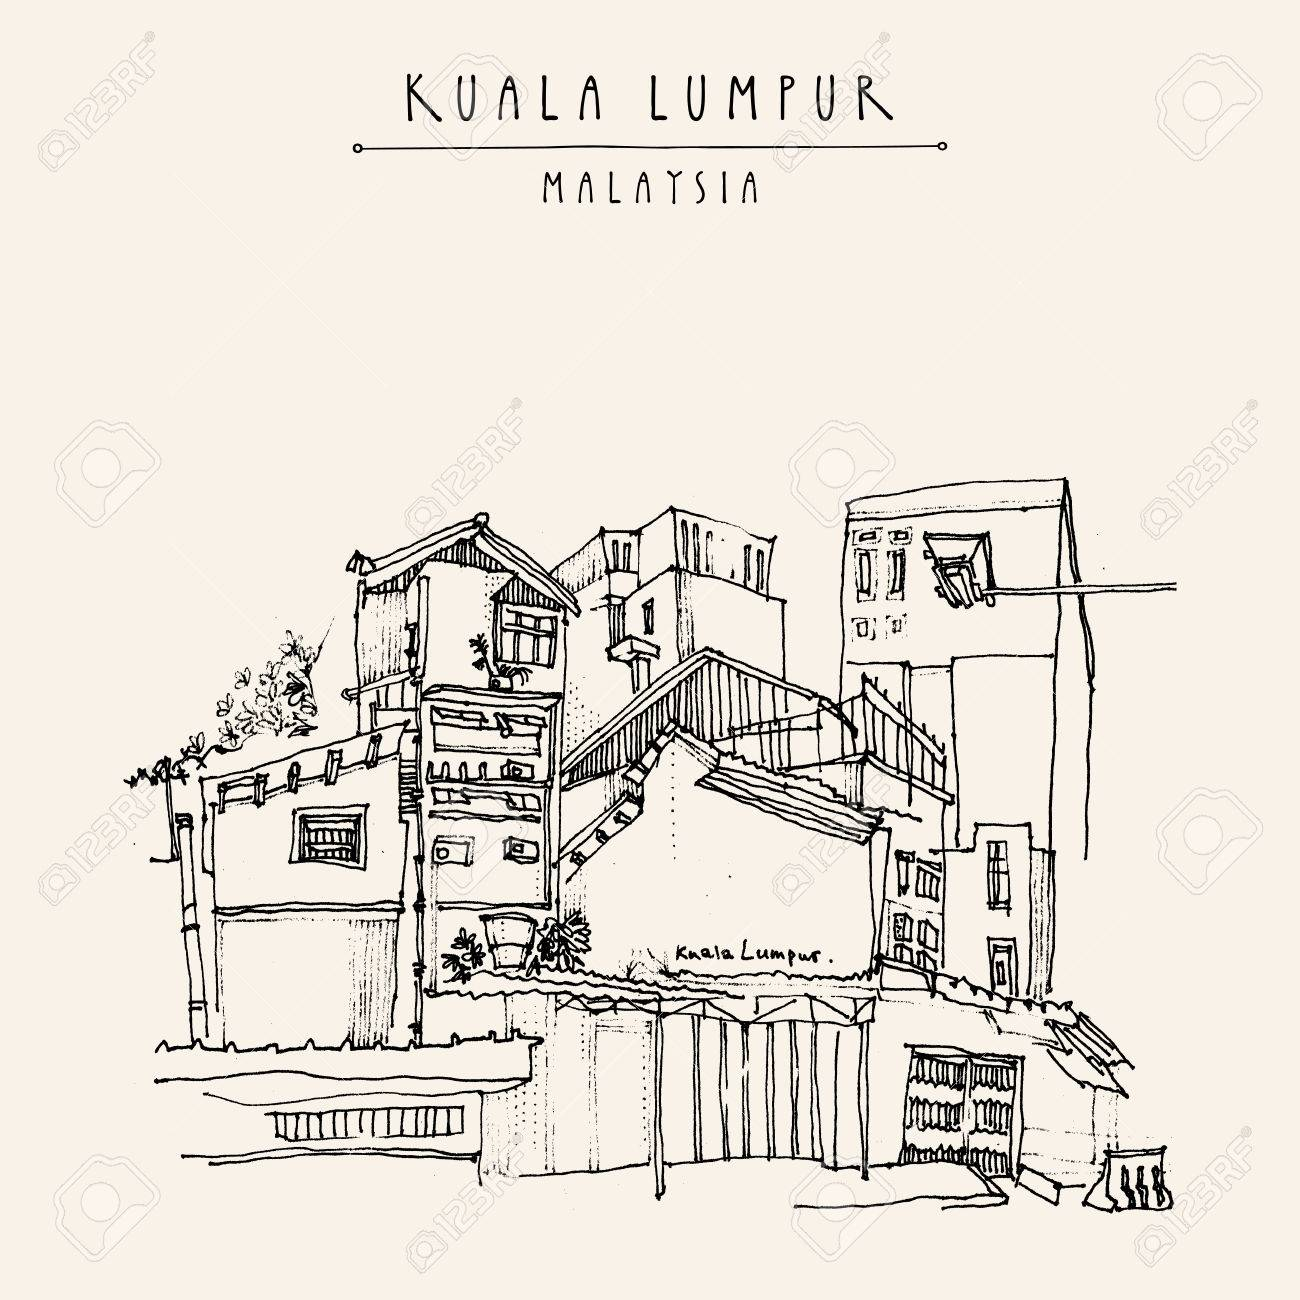 Kuala Lumpur, Malaysia. Casual view of buildings in China Town. Travel postcard with freehand sketchy drawing and hand lettered title in vector - 70873436